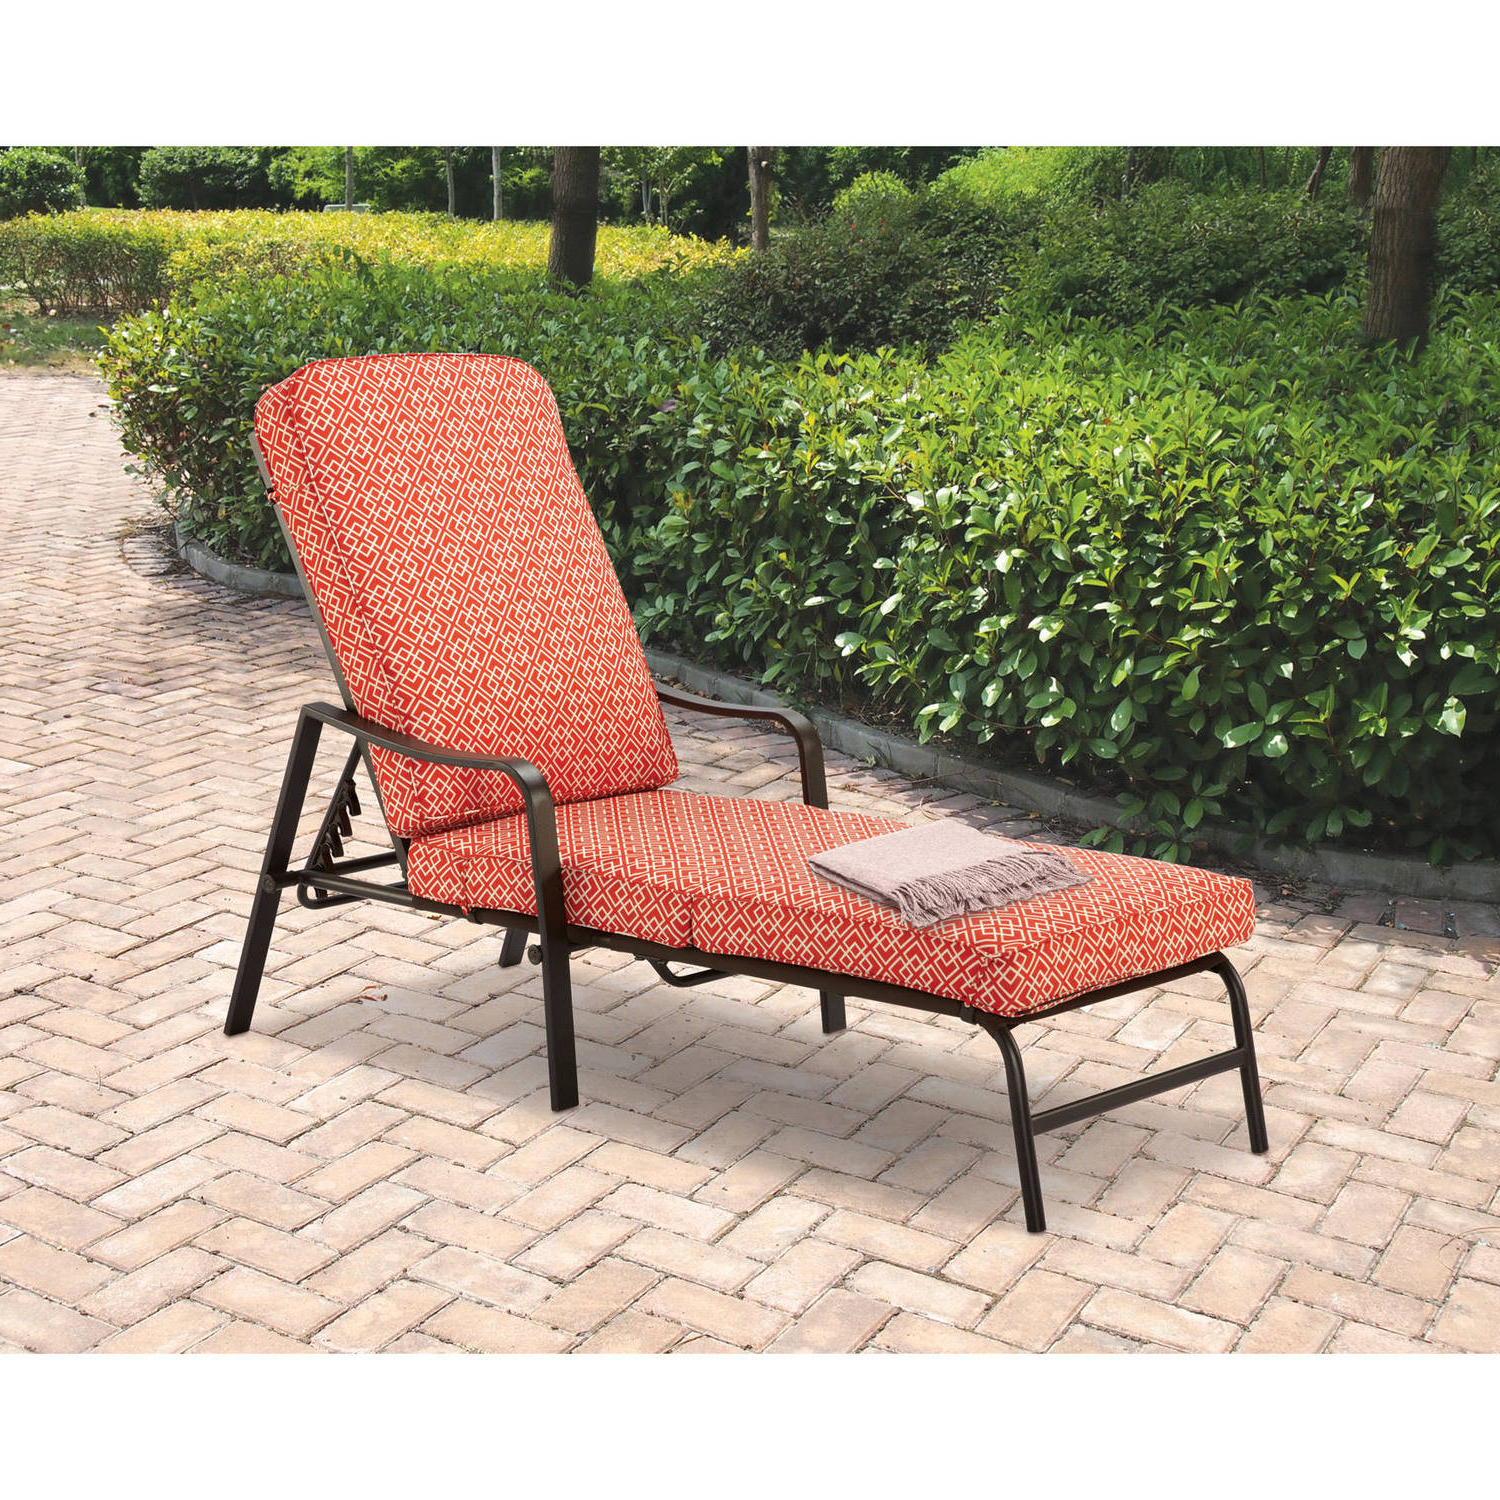 Preferred White Wicker Adjustable Chaise Loungers With Cushions Intended For Mainstays Outdoor Chaise Lounge, Orange Geo Pattern (View 20 of 25)